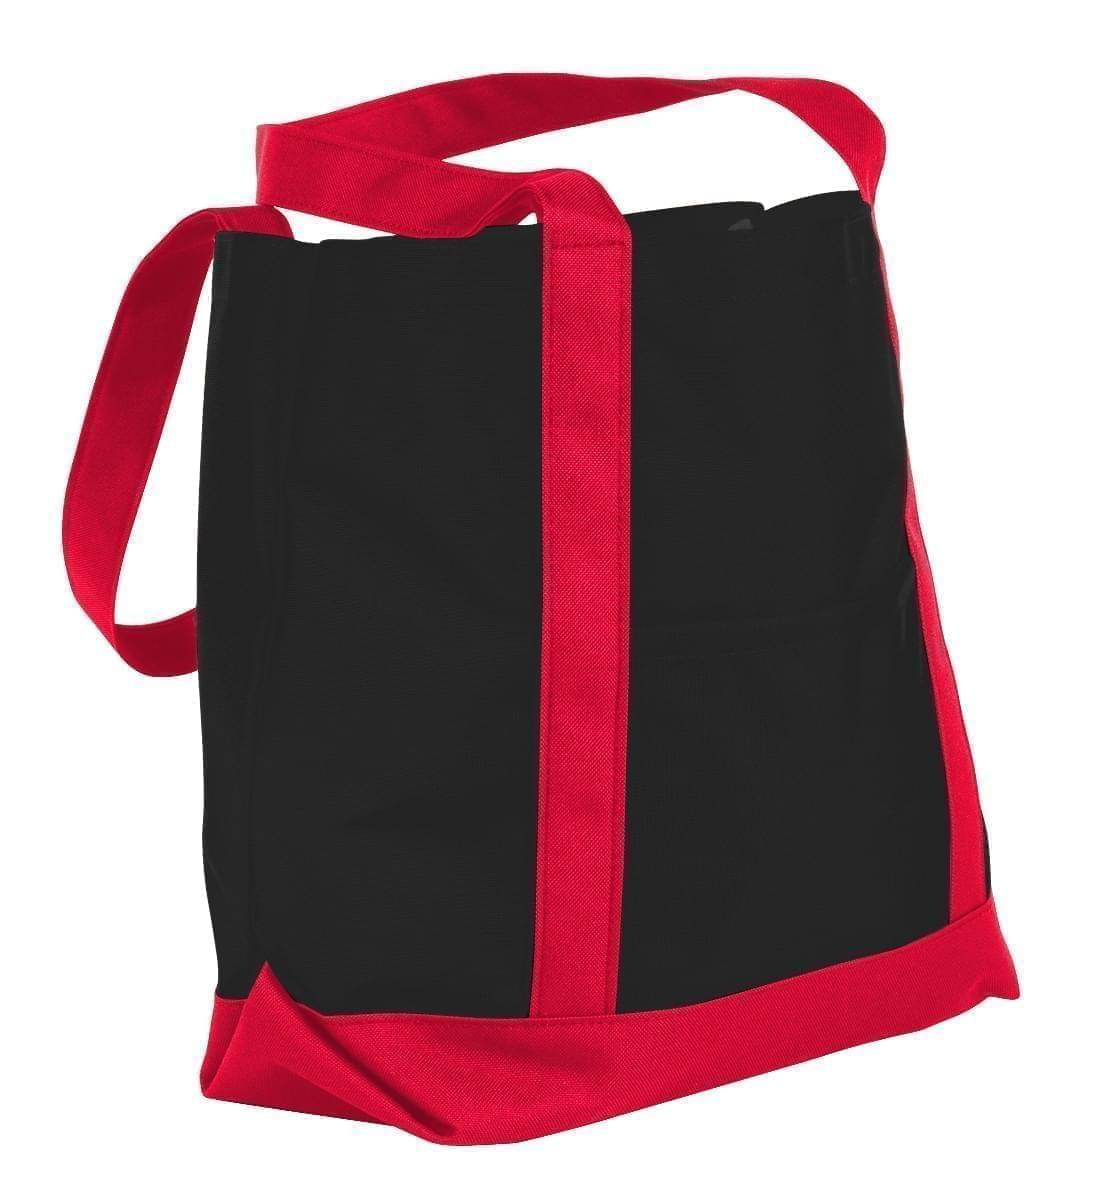 USA Made Nylon Poly Boat Tote Bags, Black-Red, XAACL1UAOL